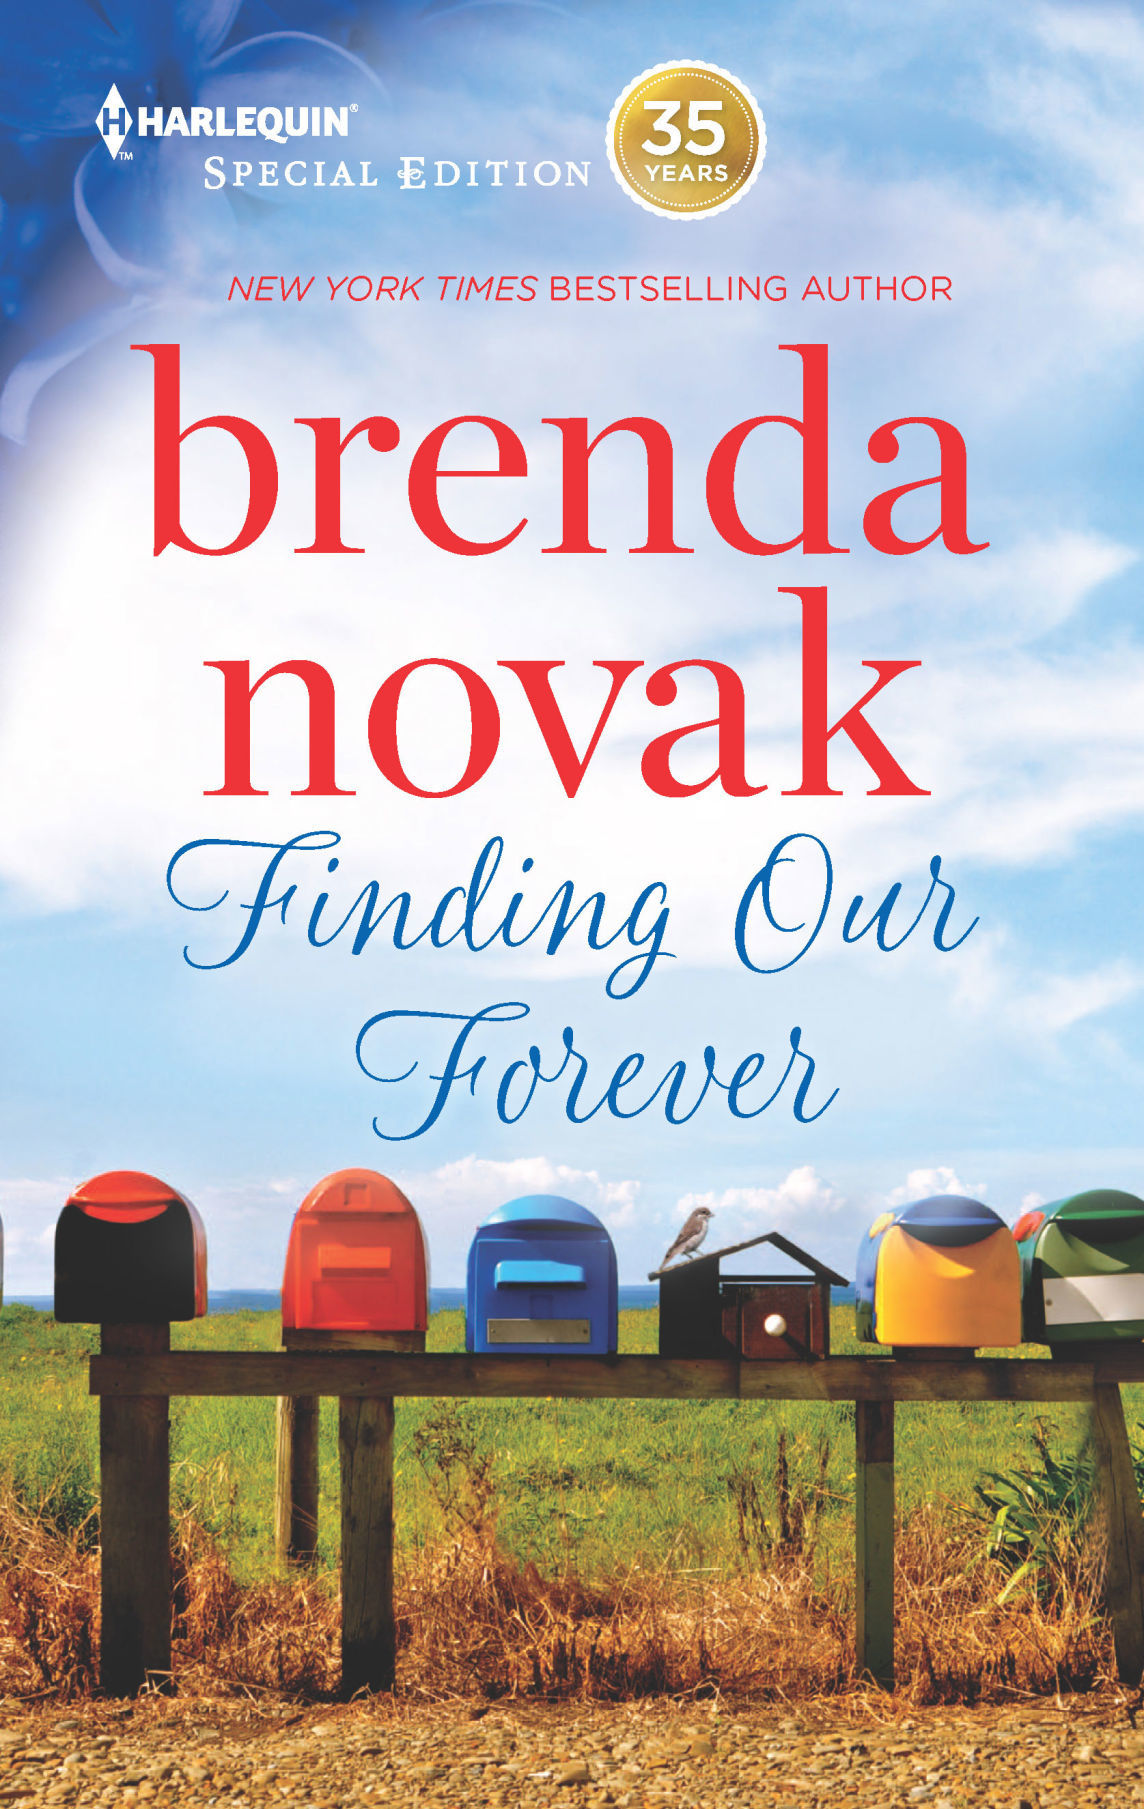 20190127-gm-book-finding our forever.jpg